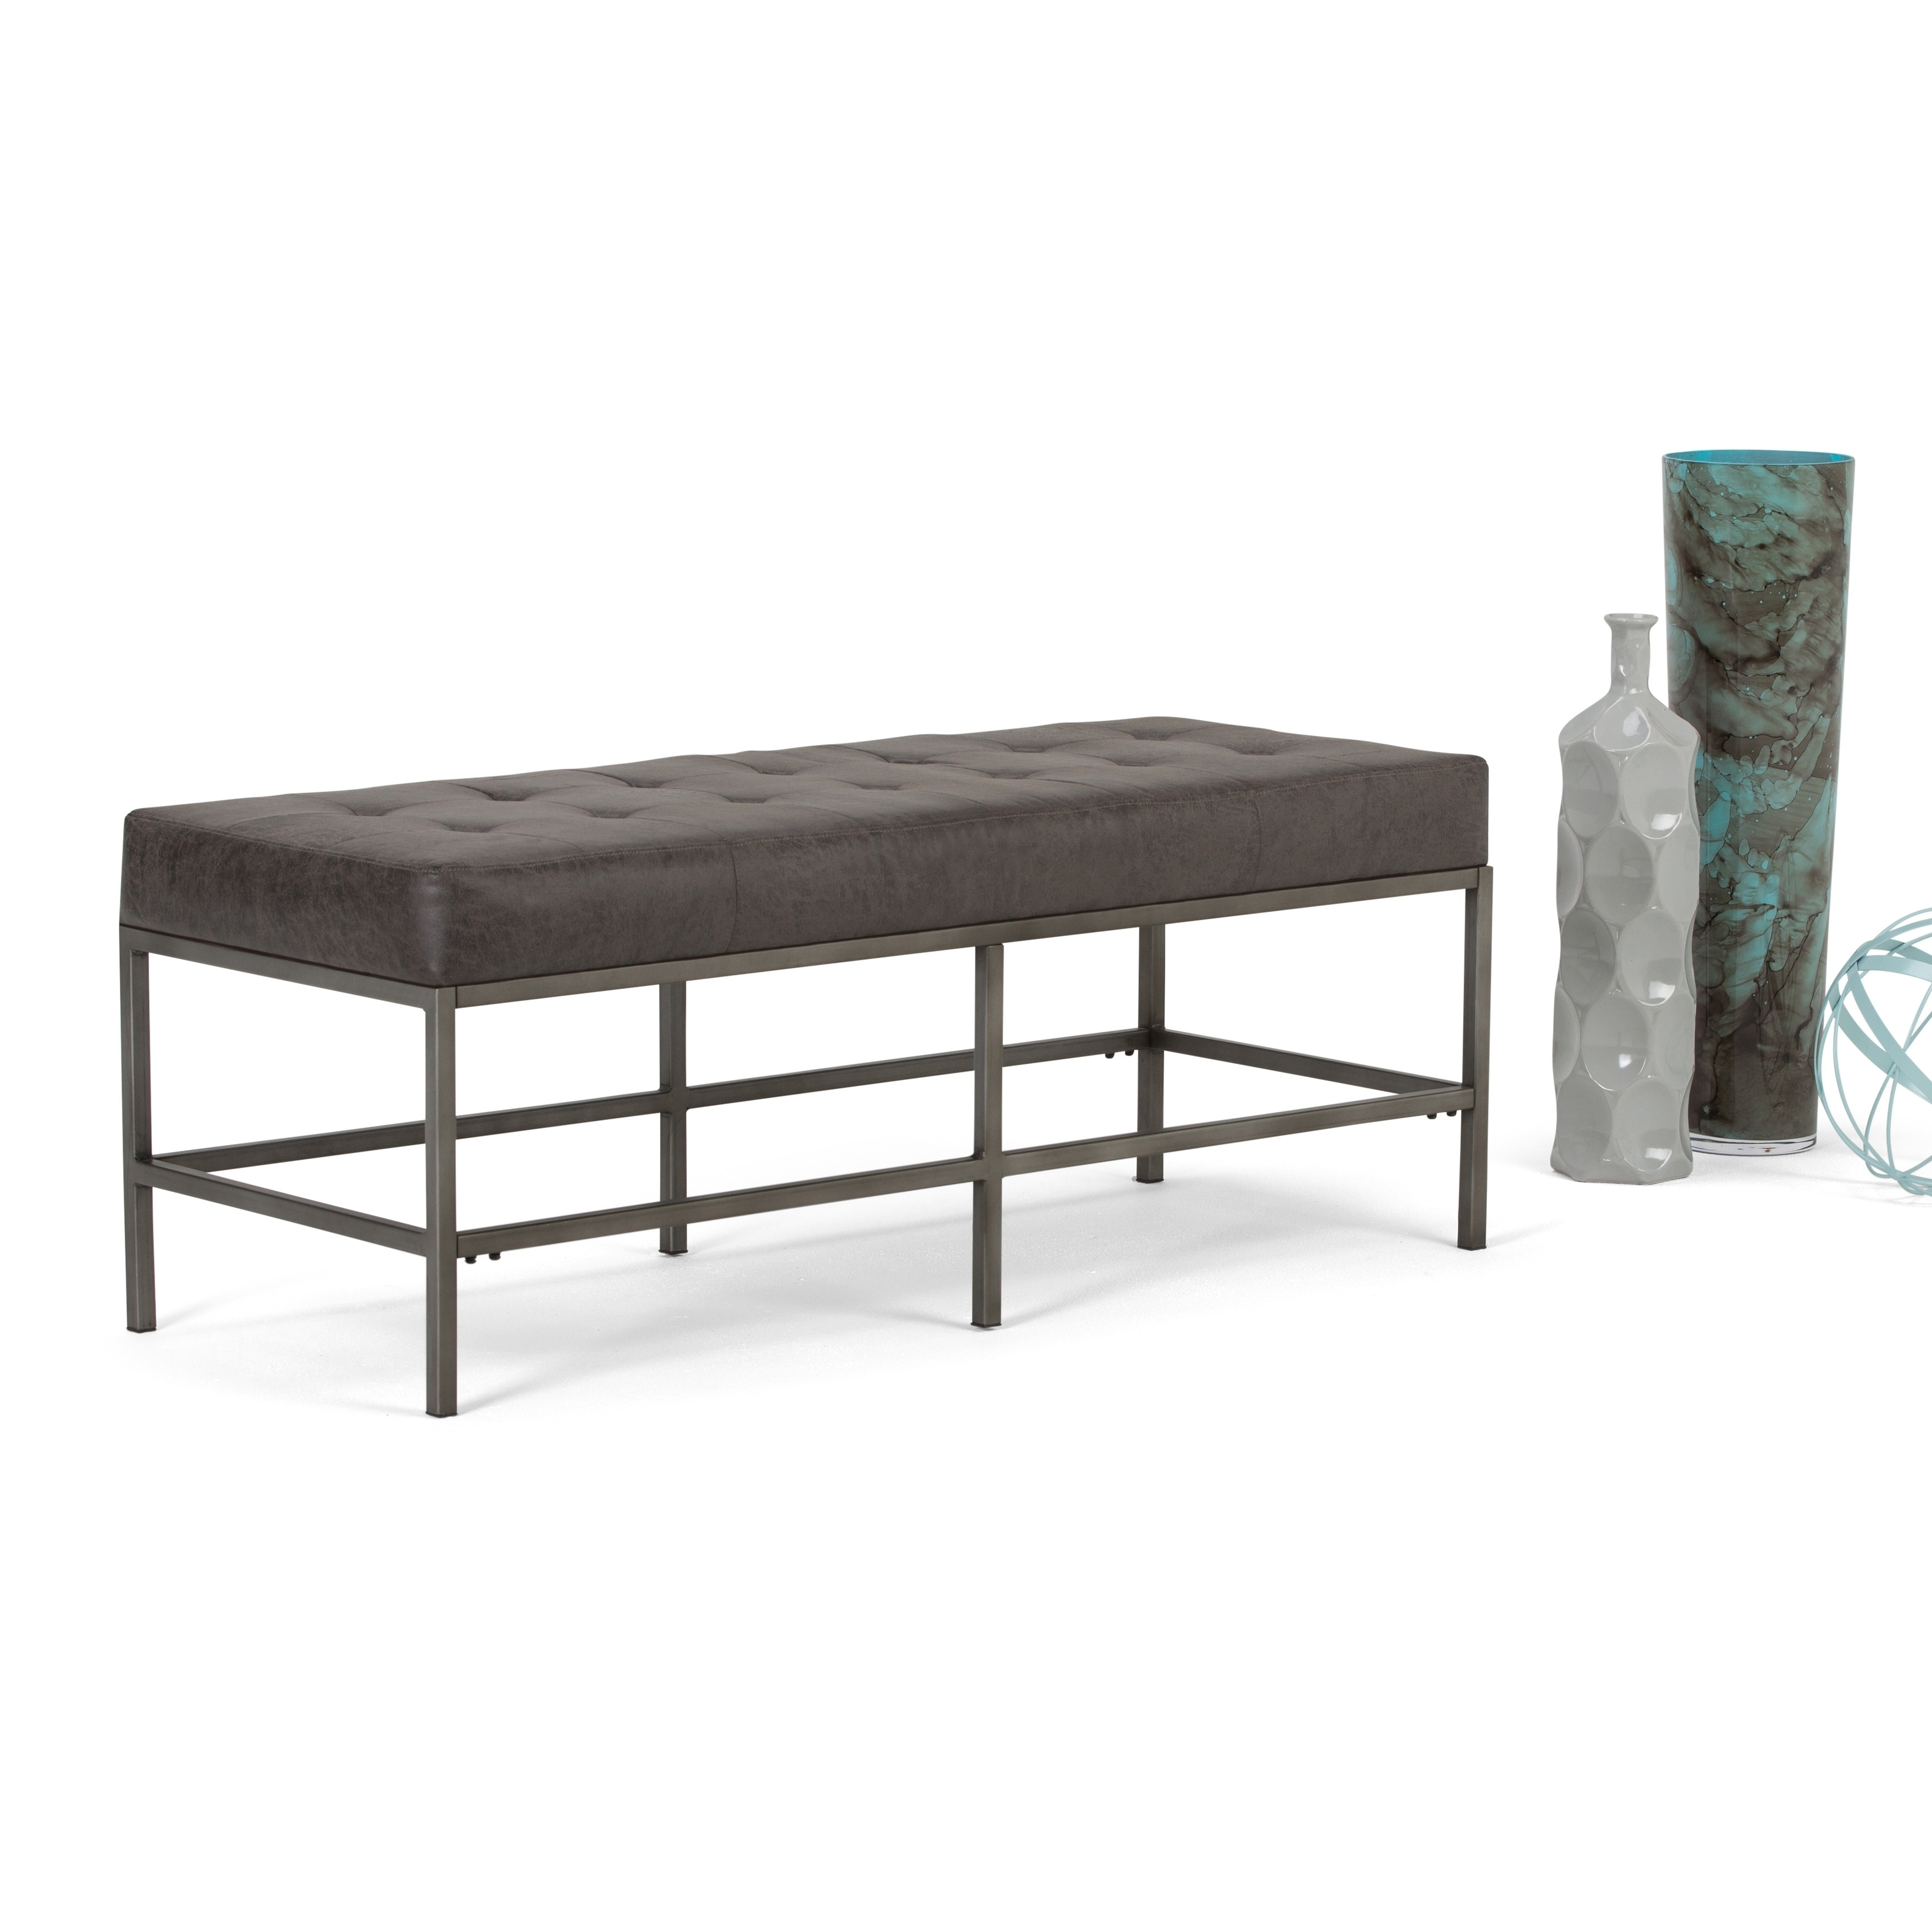 Shop Wyndenhall Seaton Modern Industrial Upholstered Ottoman Bench